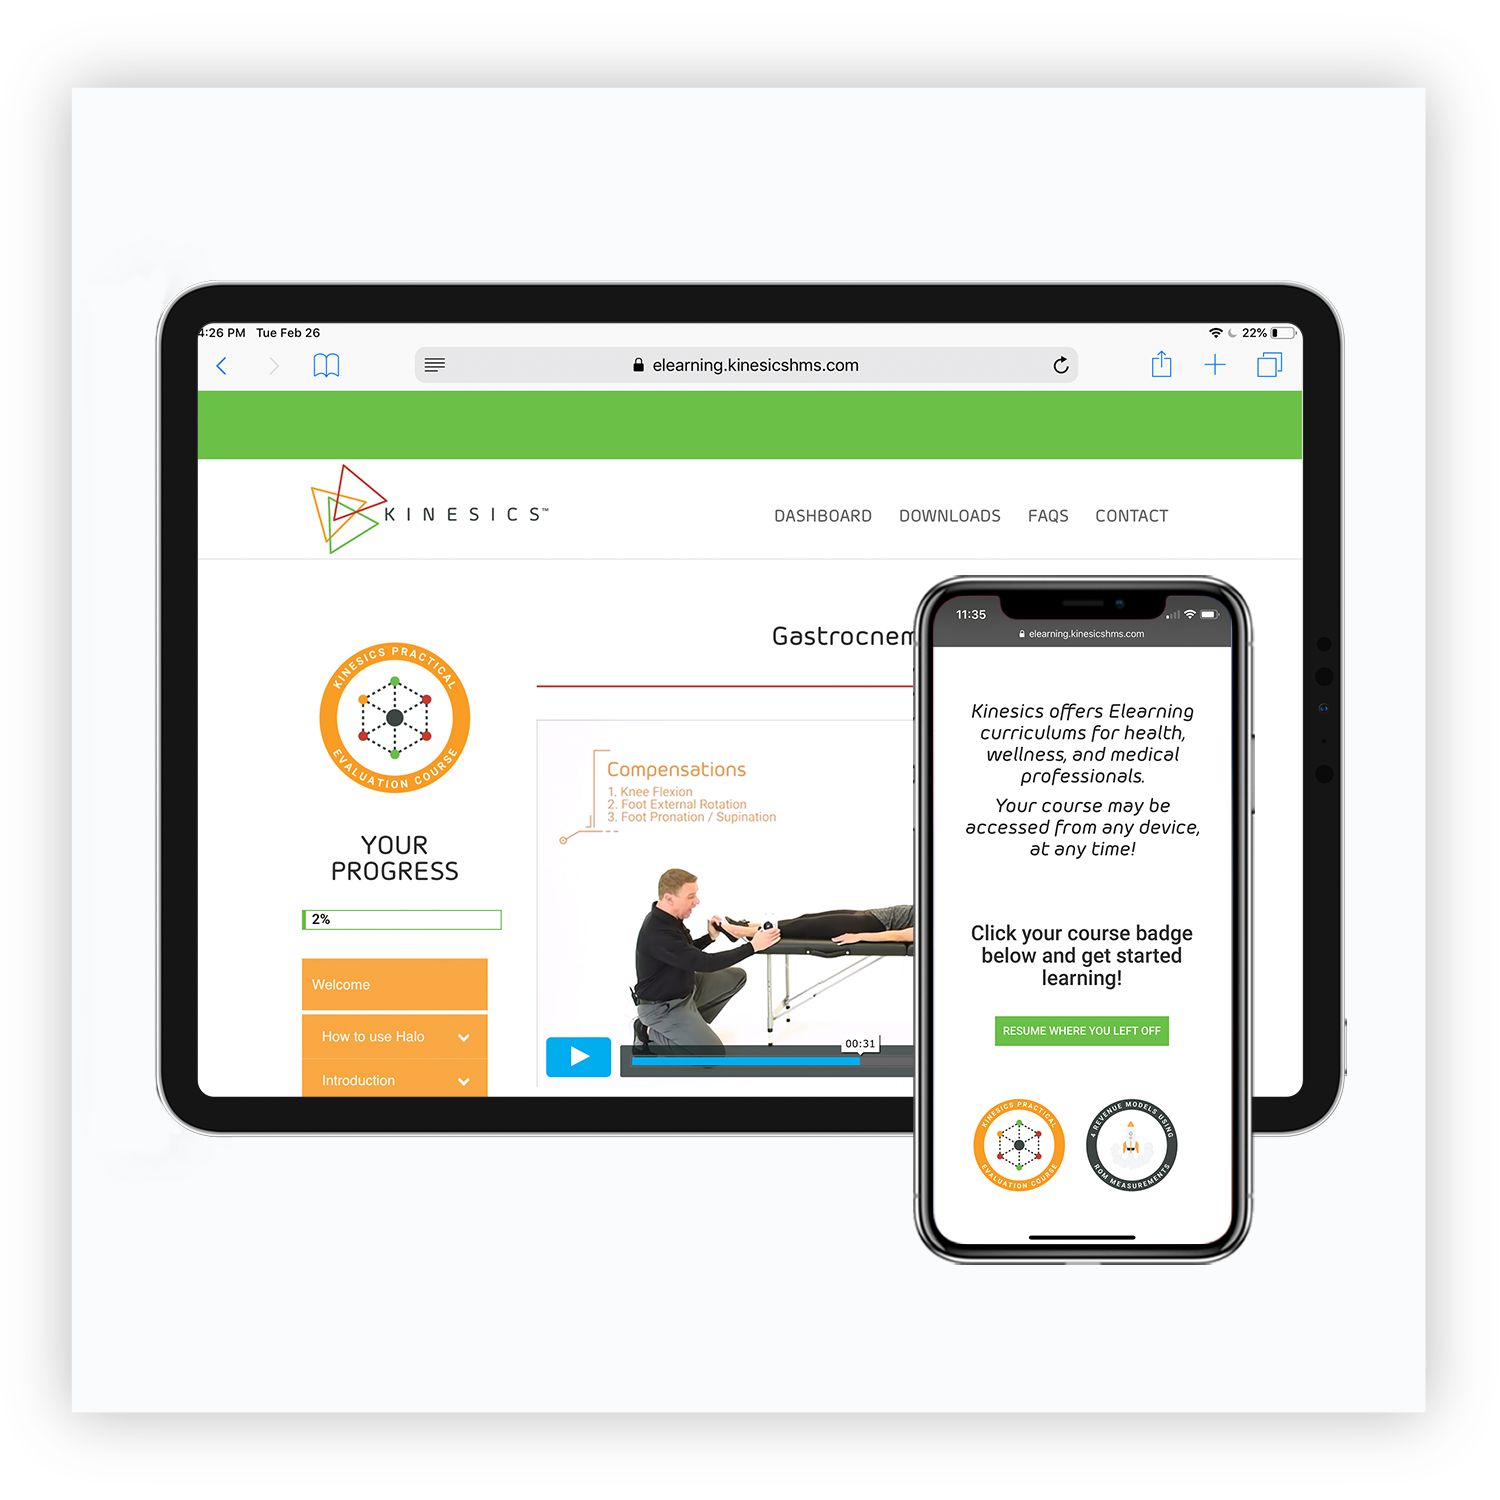 Access your course anytime, anywhere! - This course was designed for busy on-the-go professionalsEach module takes about 5 minutes to complete—just pull out your phone when you have 5 minutes!